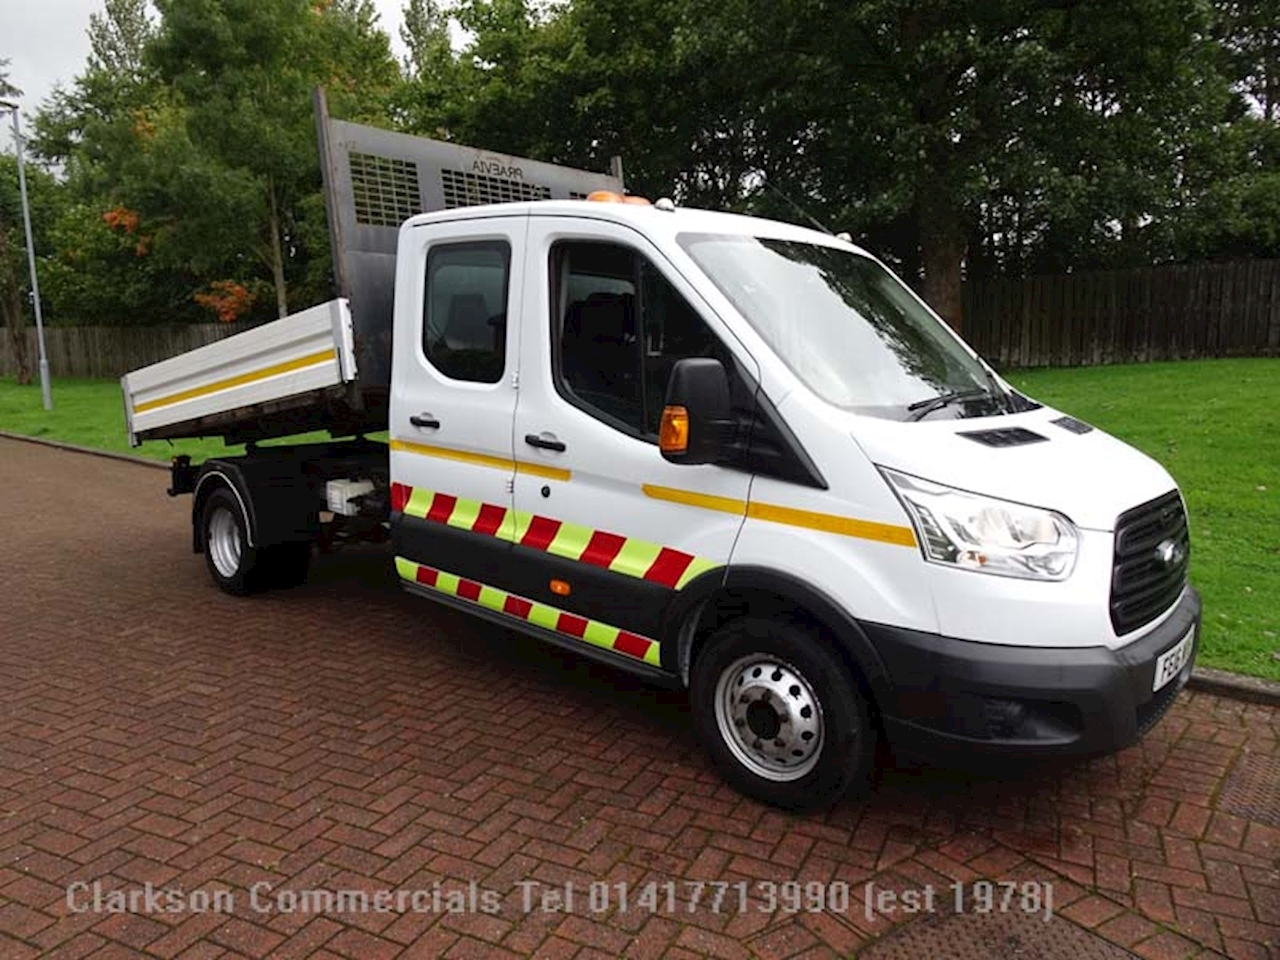 Ford Transit 2.2 TDCi 350 Double Cab Chassis Cab 4dr Diesel Manual RWD L3 H1 EU5 (DRW) (125 ps) Double Cab Chassis Cab 2.2 Manual Diesel